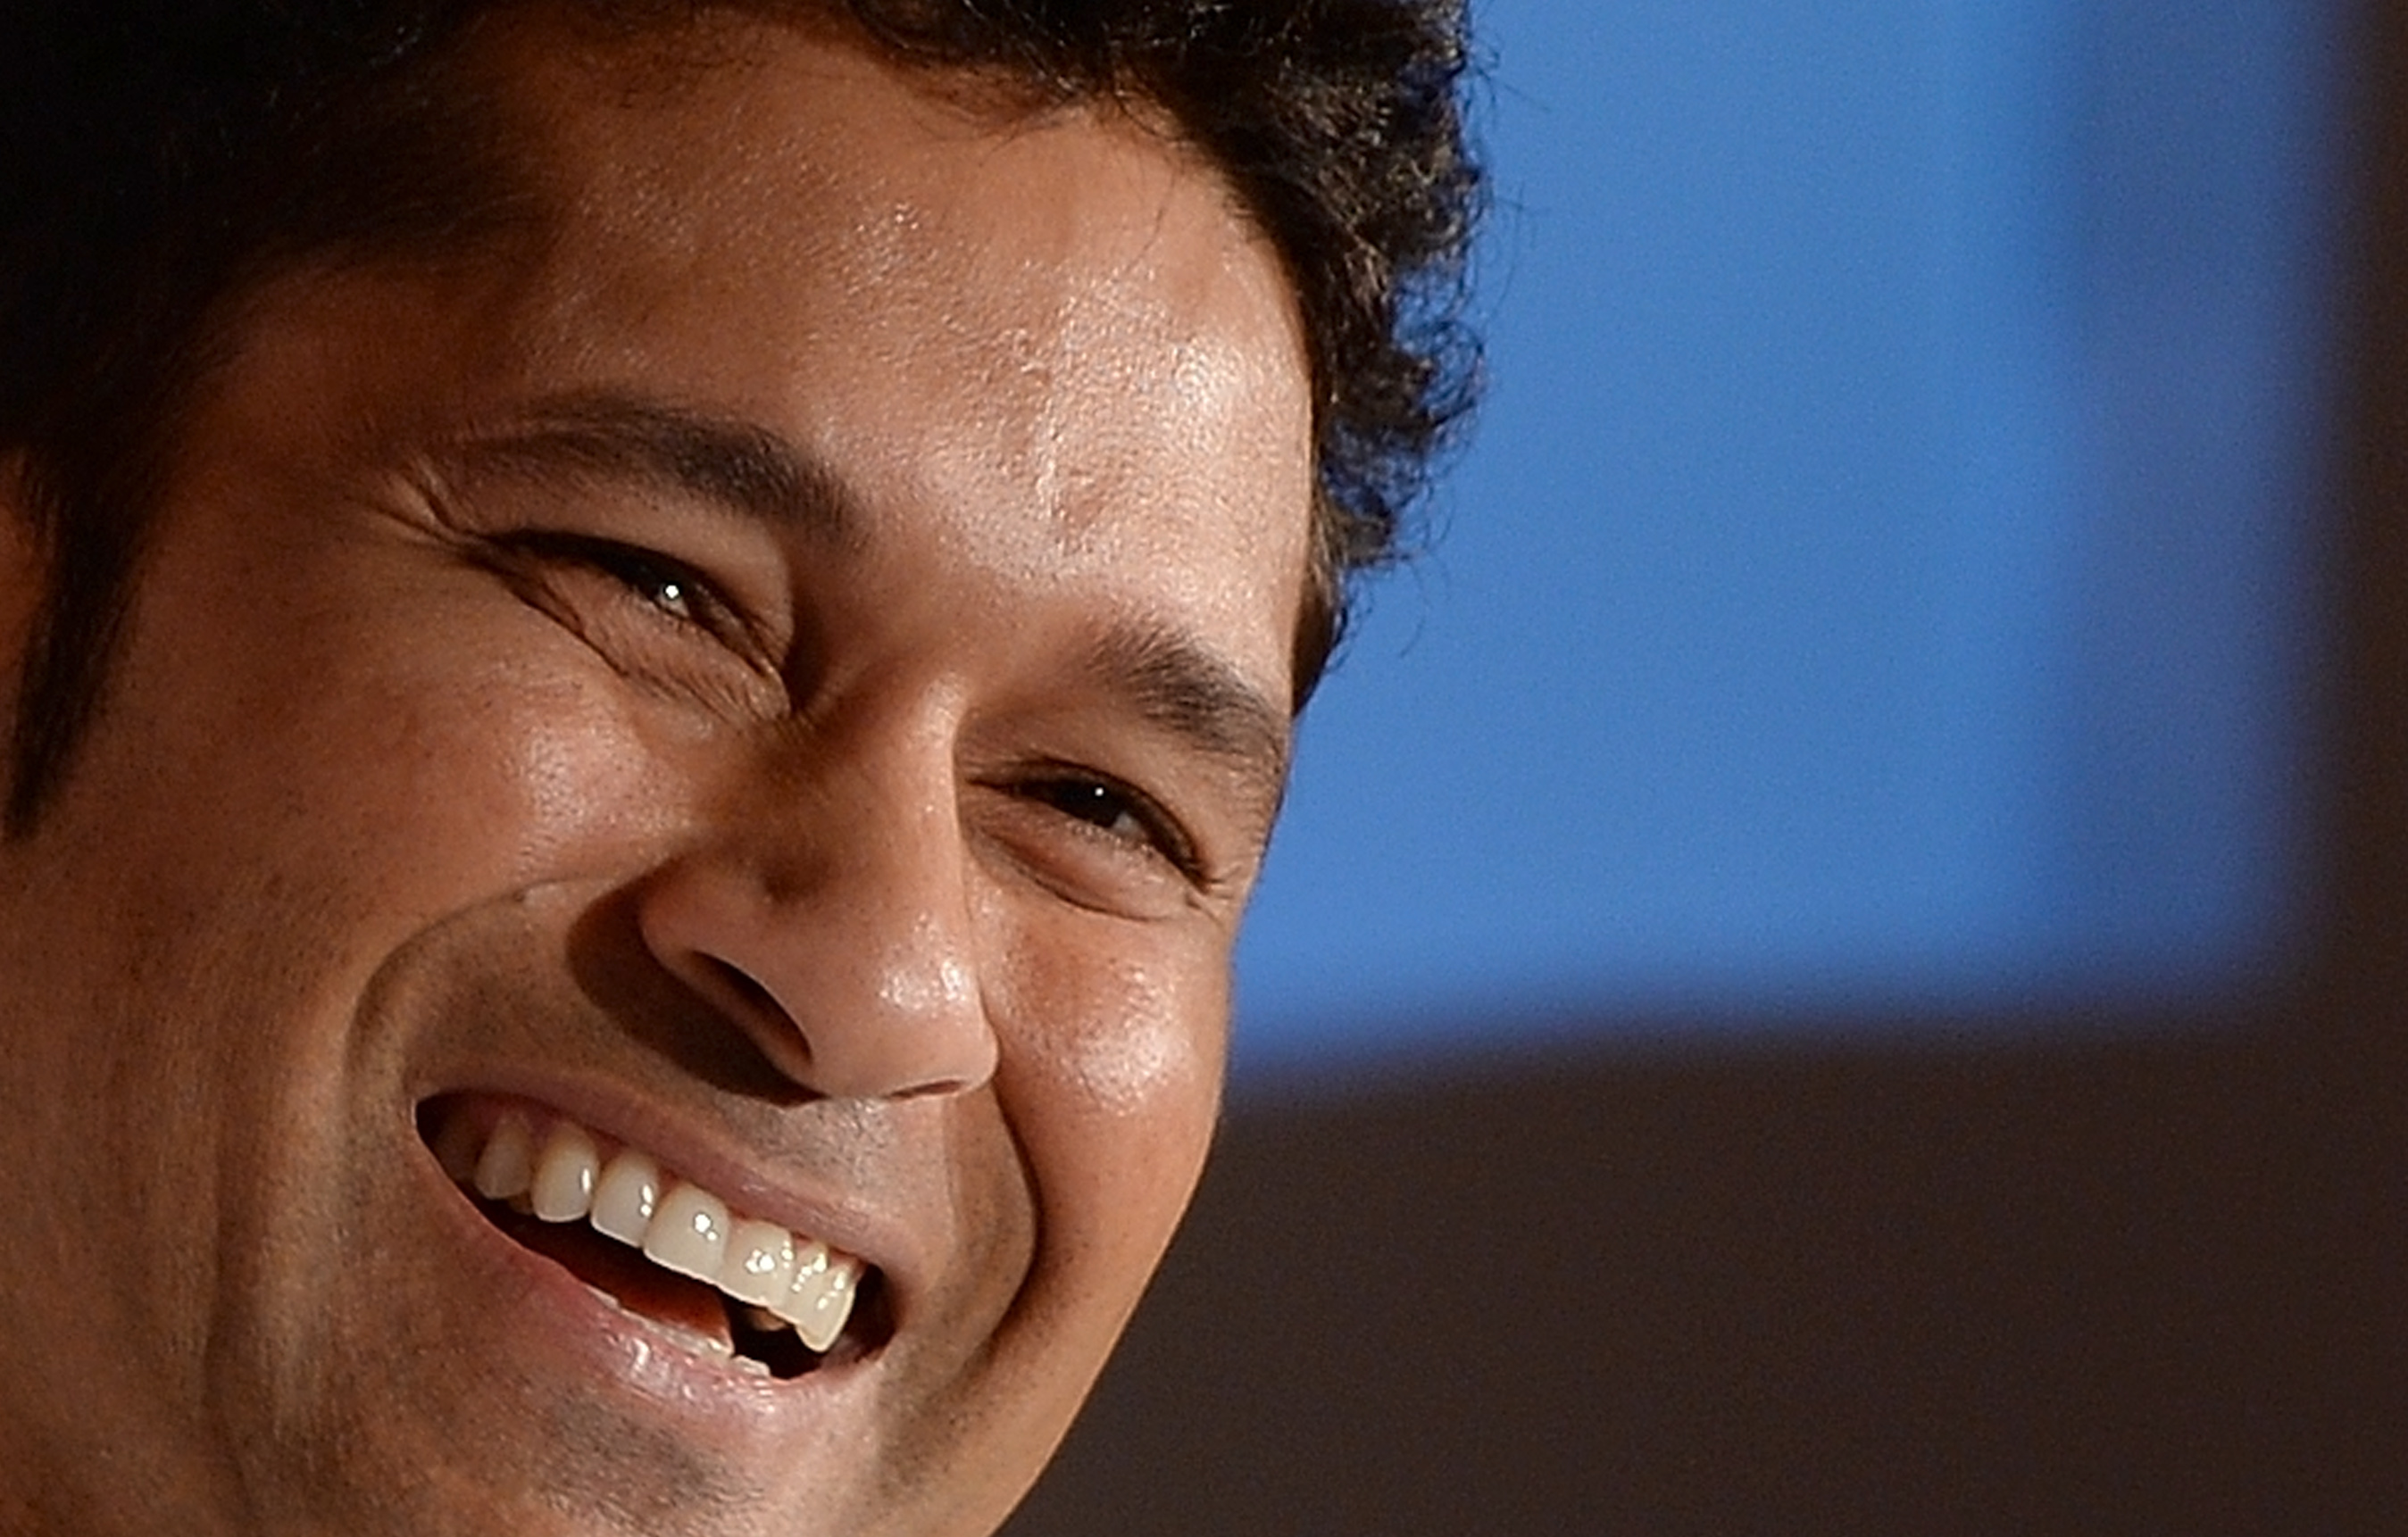 lovely sachin tendulkar beautiful smile face still hd background